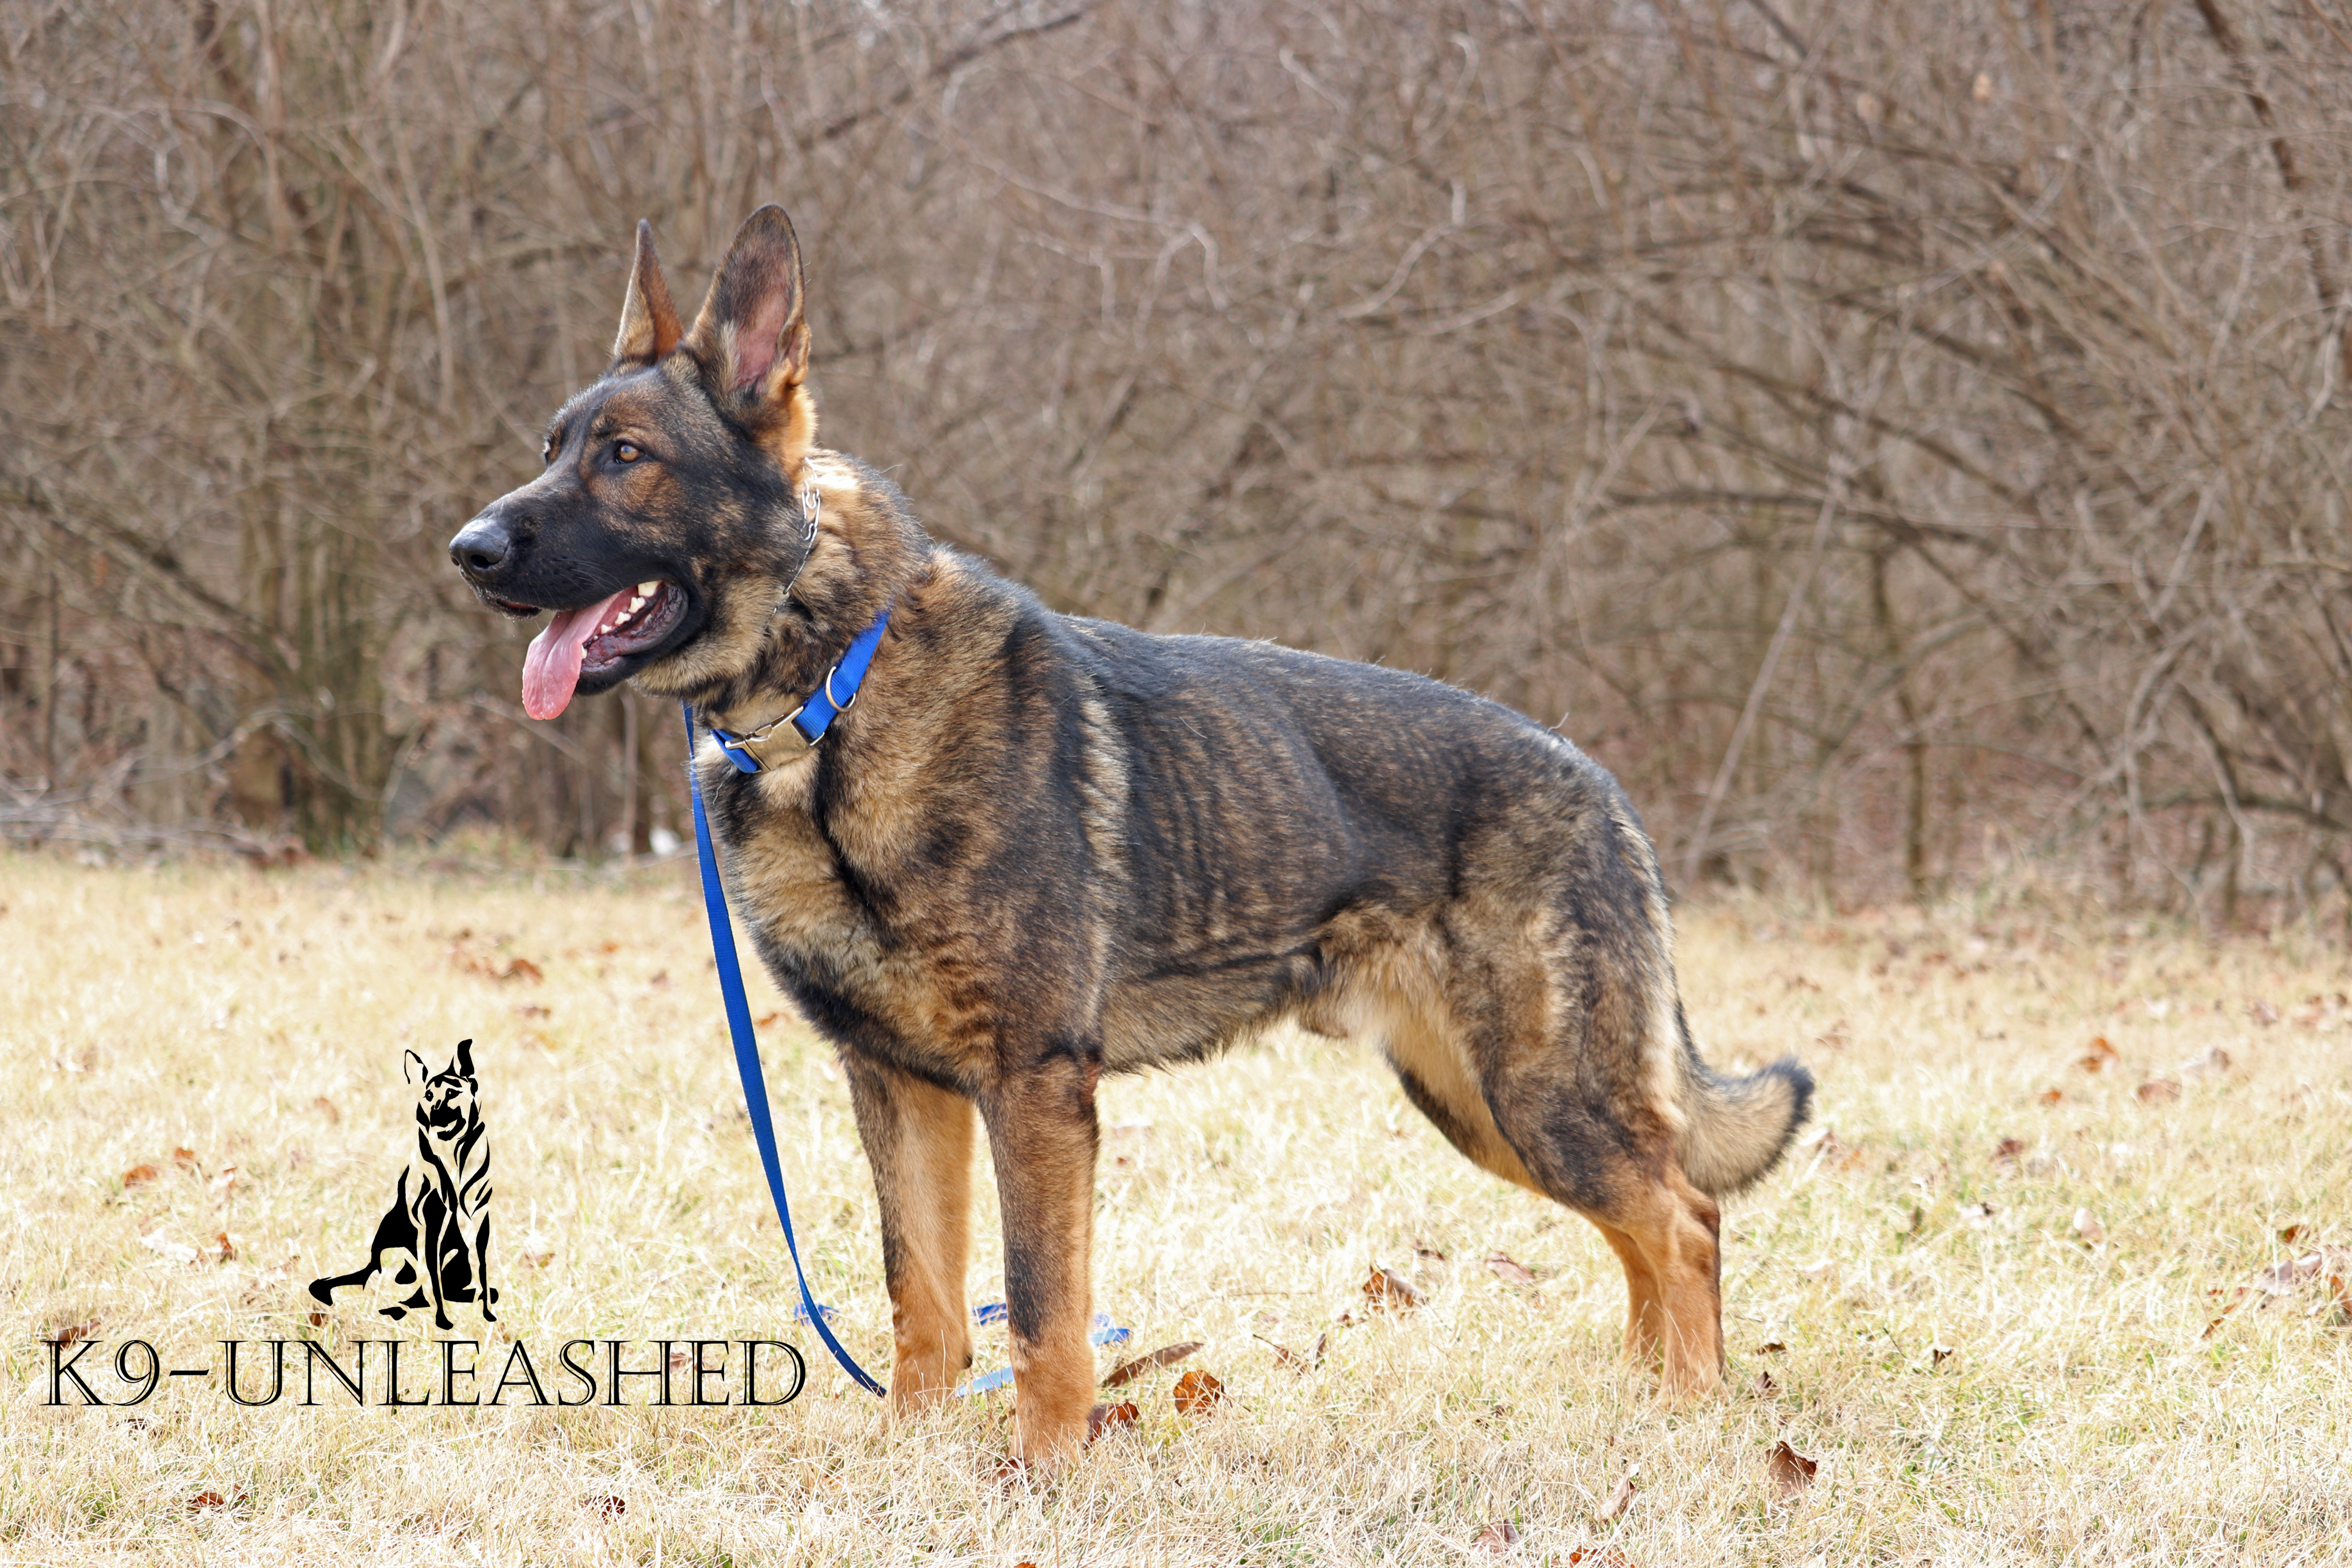 K9 Puppy, Stand Side, K9 Unleashed